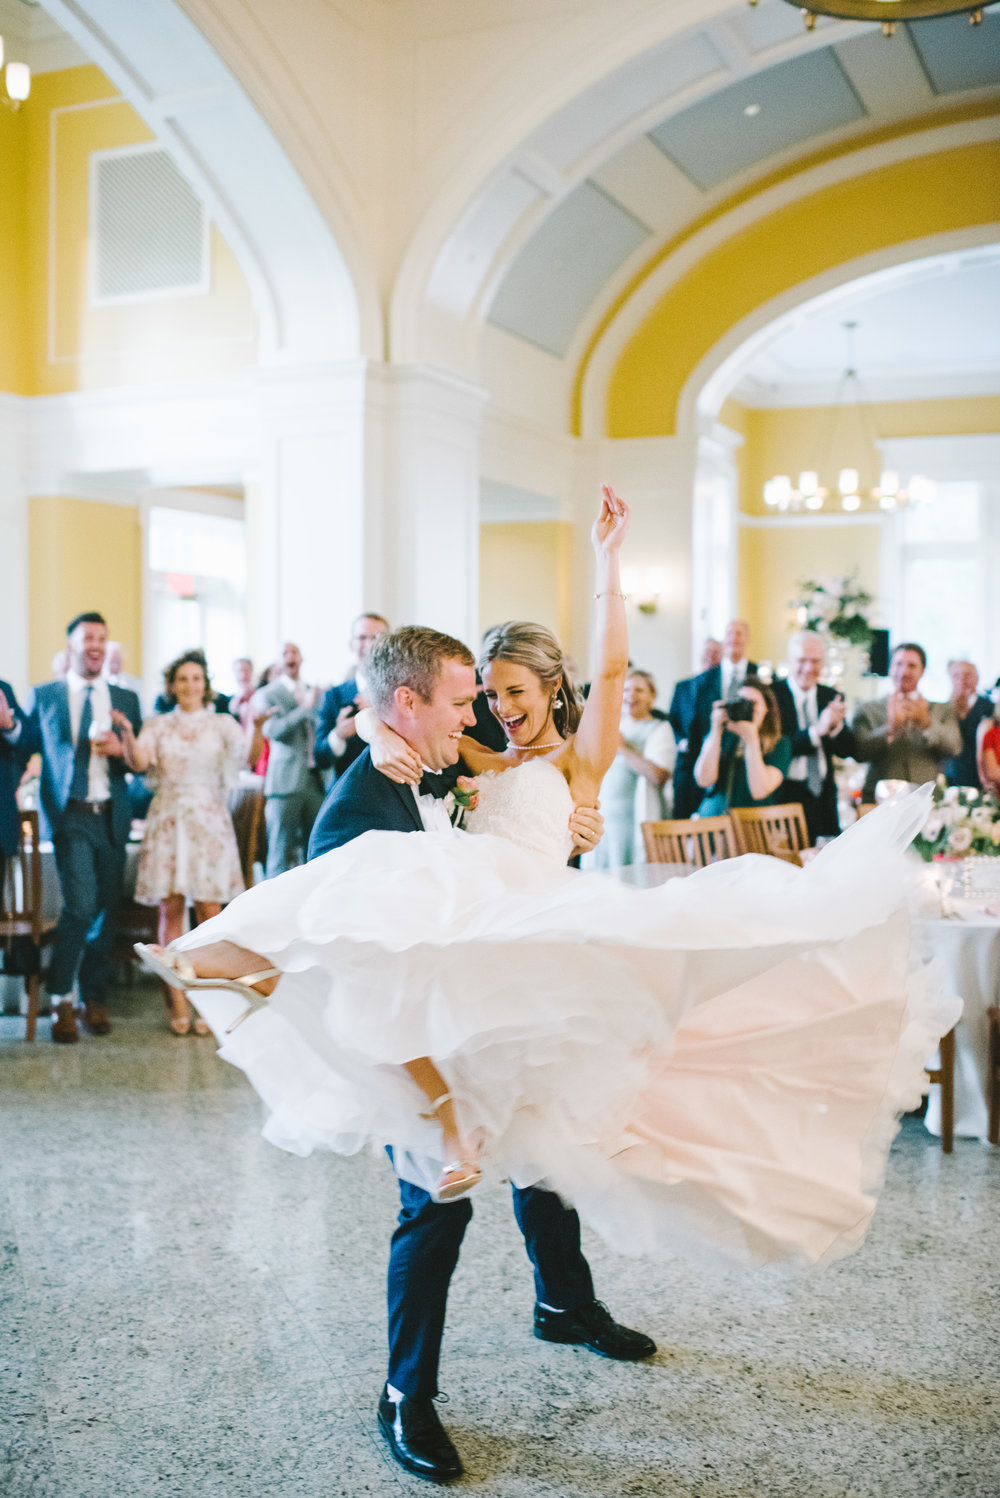 4. Be in the Moment - Your wedding day really does go by like a blur. So, yes, you will have photos and video, but there's nothing quite like being there 100% yourself. Those are the moments that the photos and the video will immortalize for you. You need only enjoy them.